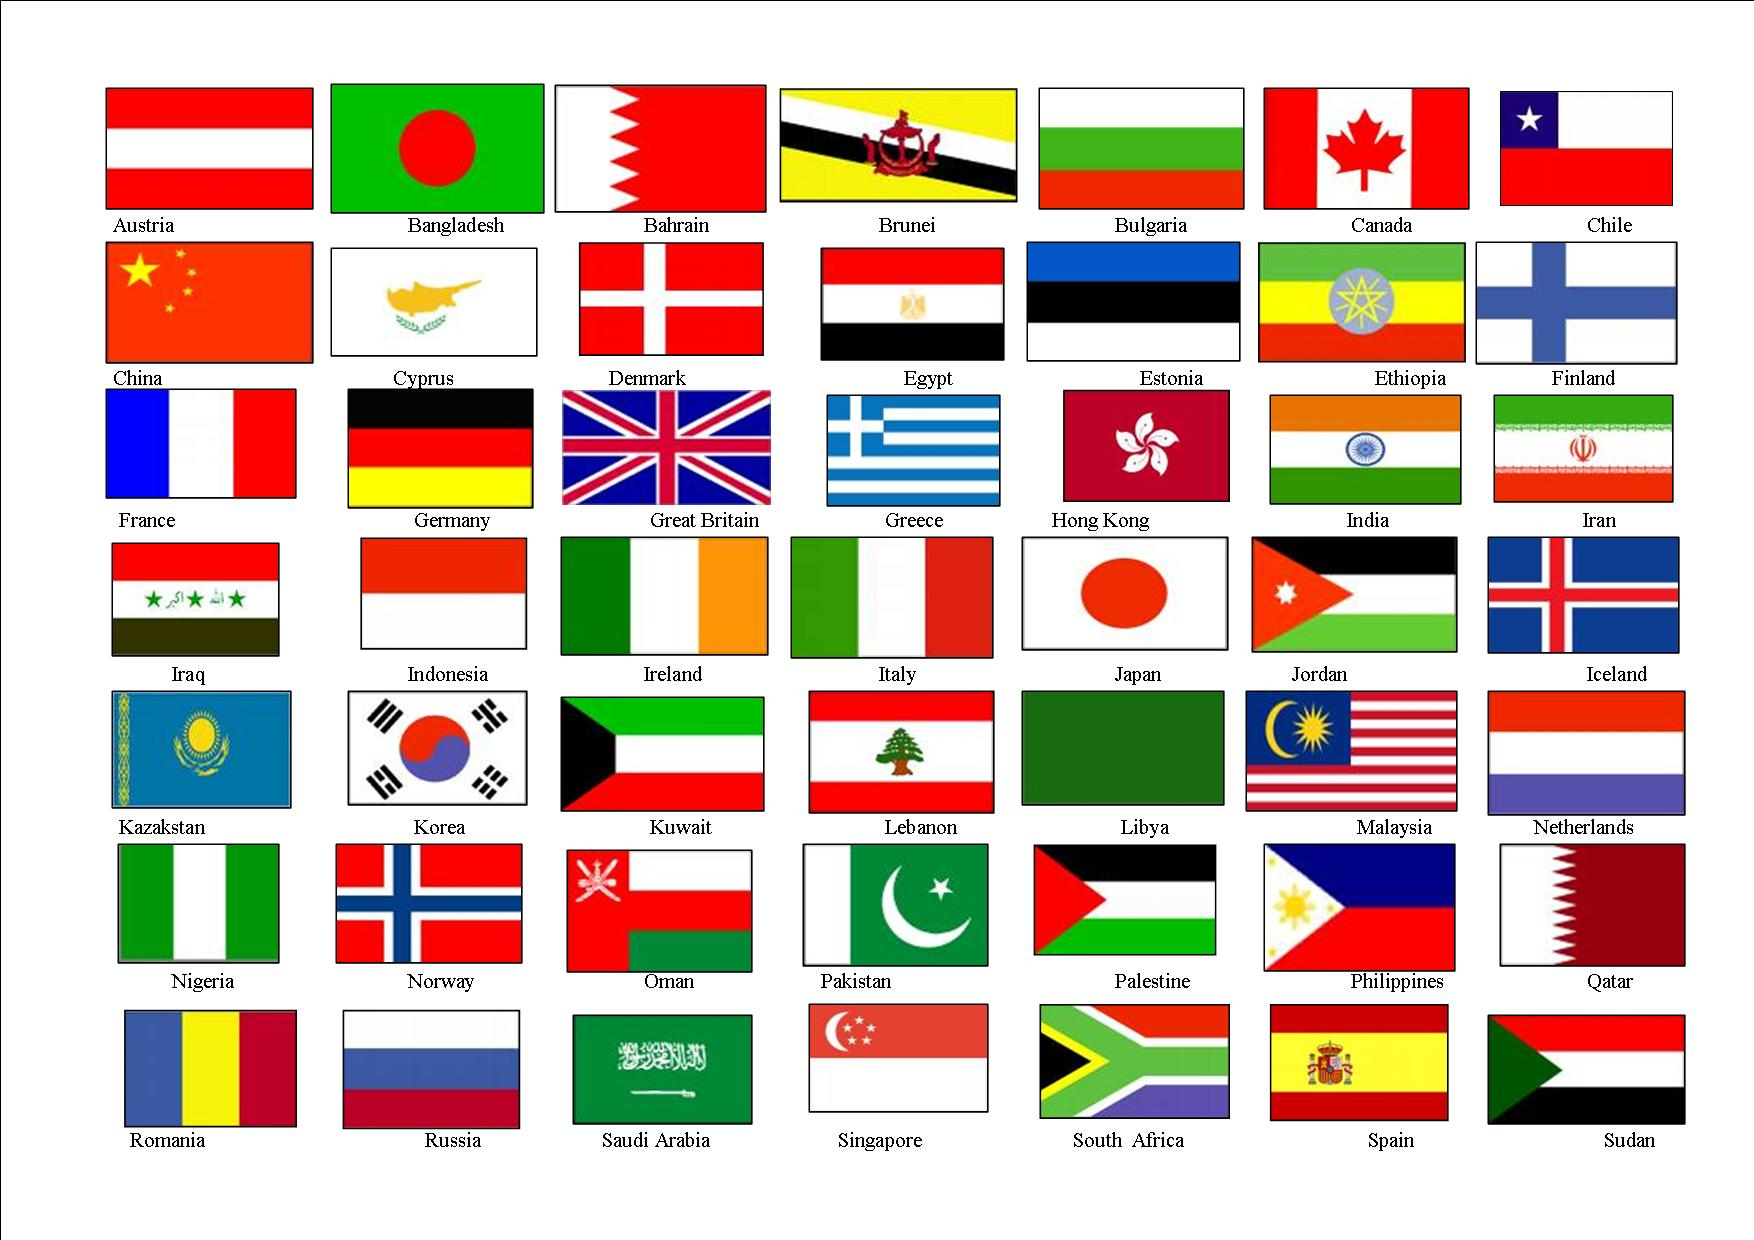 map of muslim countries with Flags Of Every Country Epv4 Xxuabgbfpyb2vyocmx9smj J55q9njzoew 7cnii on History additionally India Pakistan Celebrate Independence Day 150815085958186 additionally Watch moreover 25160 Lislamisation De La Bosnie Par Les Maitres Seoudiens De Valls Et Sarkozy 20 Ans Apres La Guerre Une Base Arriere Pour Lei Au Coeur De Leurope additionally 389.